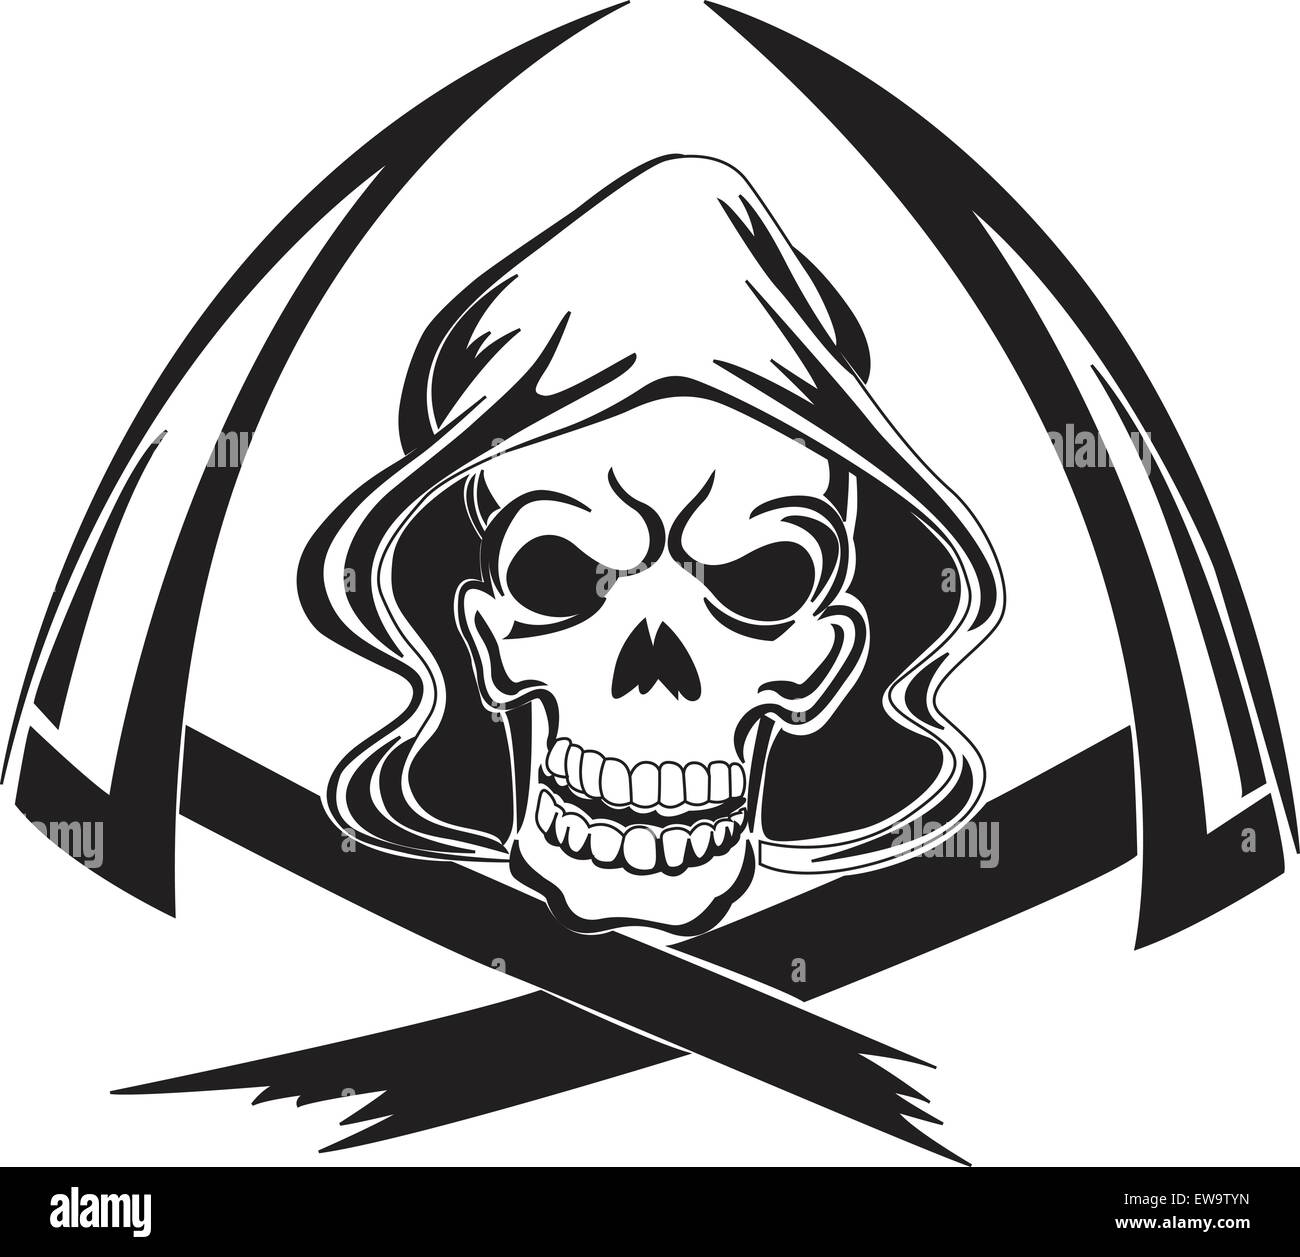 hight resolution of tattoo design of a grim reaper with scythe vintage engraved illustration stock vector